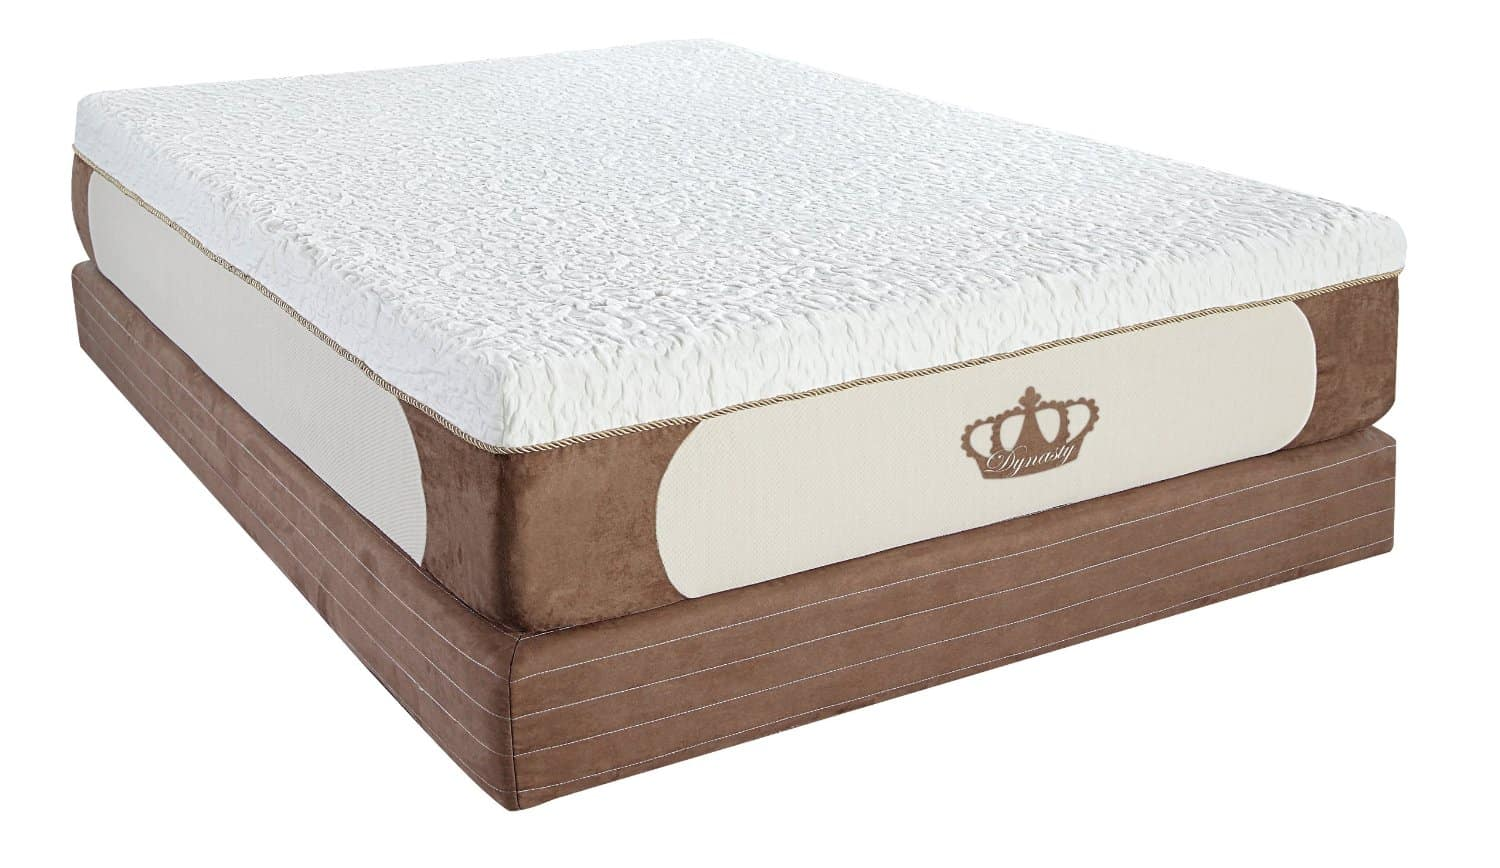 memory foam mattress brands DynastyMattress New Cool Breeze 12 Inch Gel Memory Foam Mattress  memory foam mattress brands